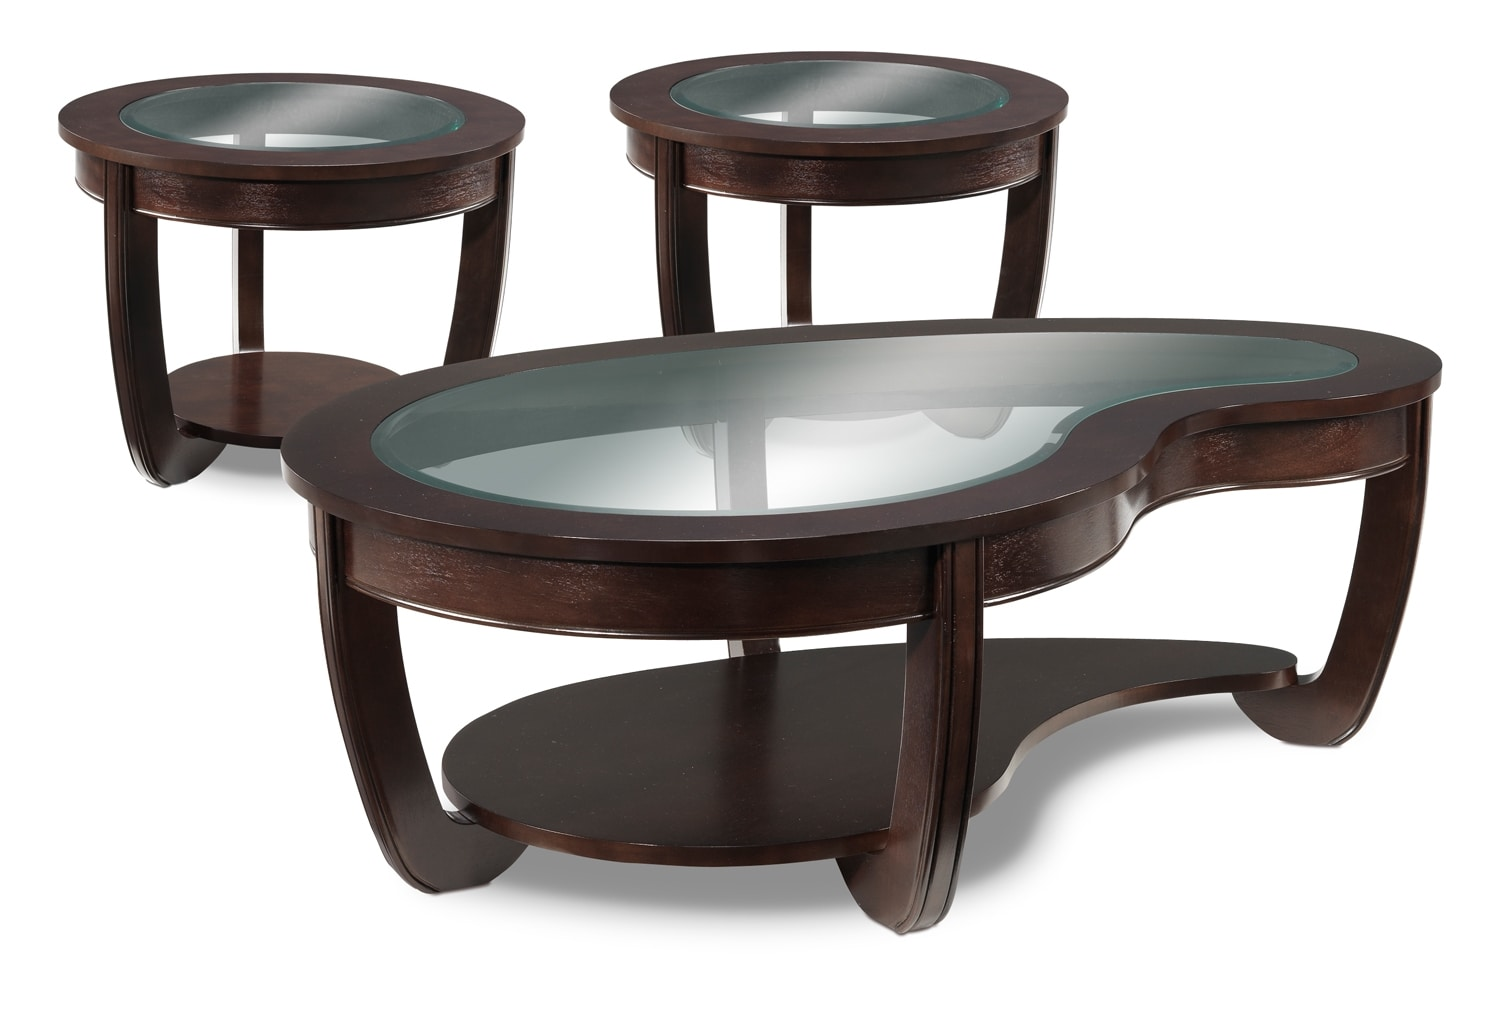 Kitson Coffee Table and Two End Tables - Cherry